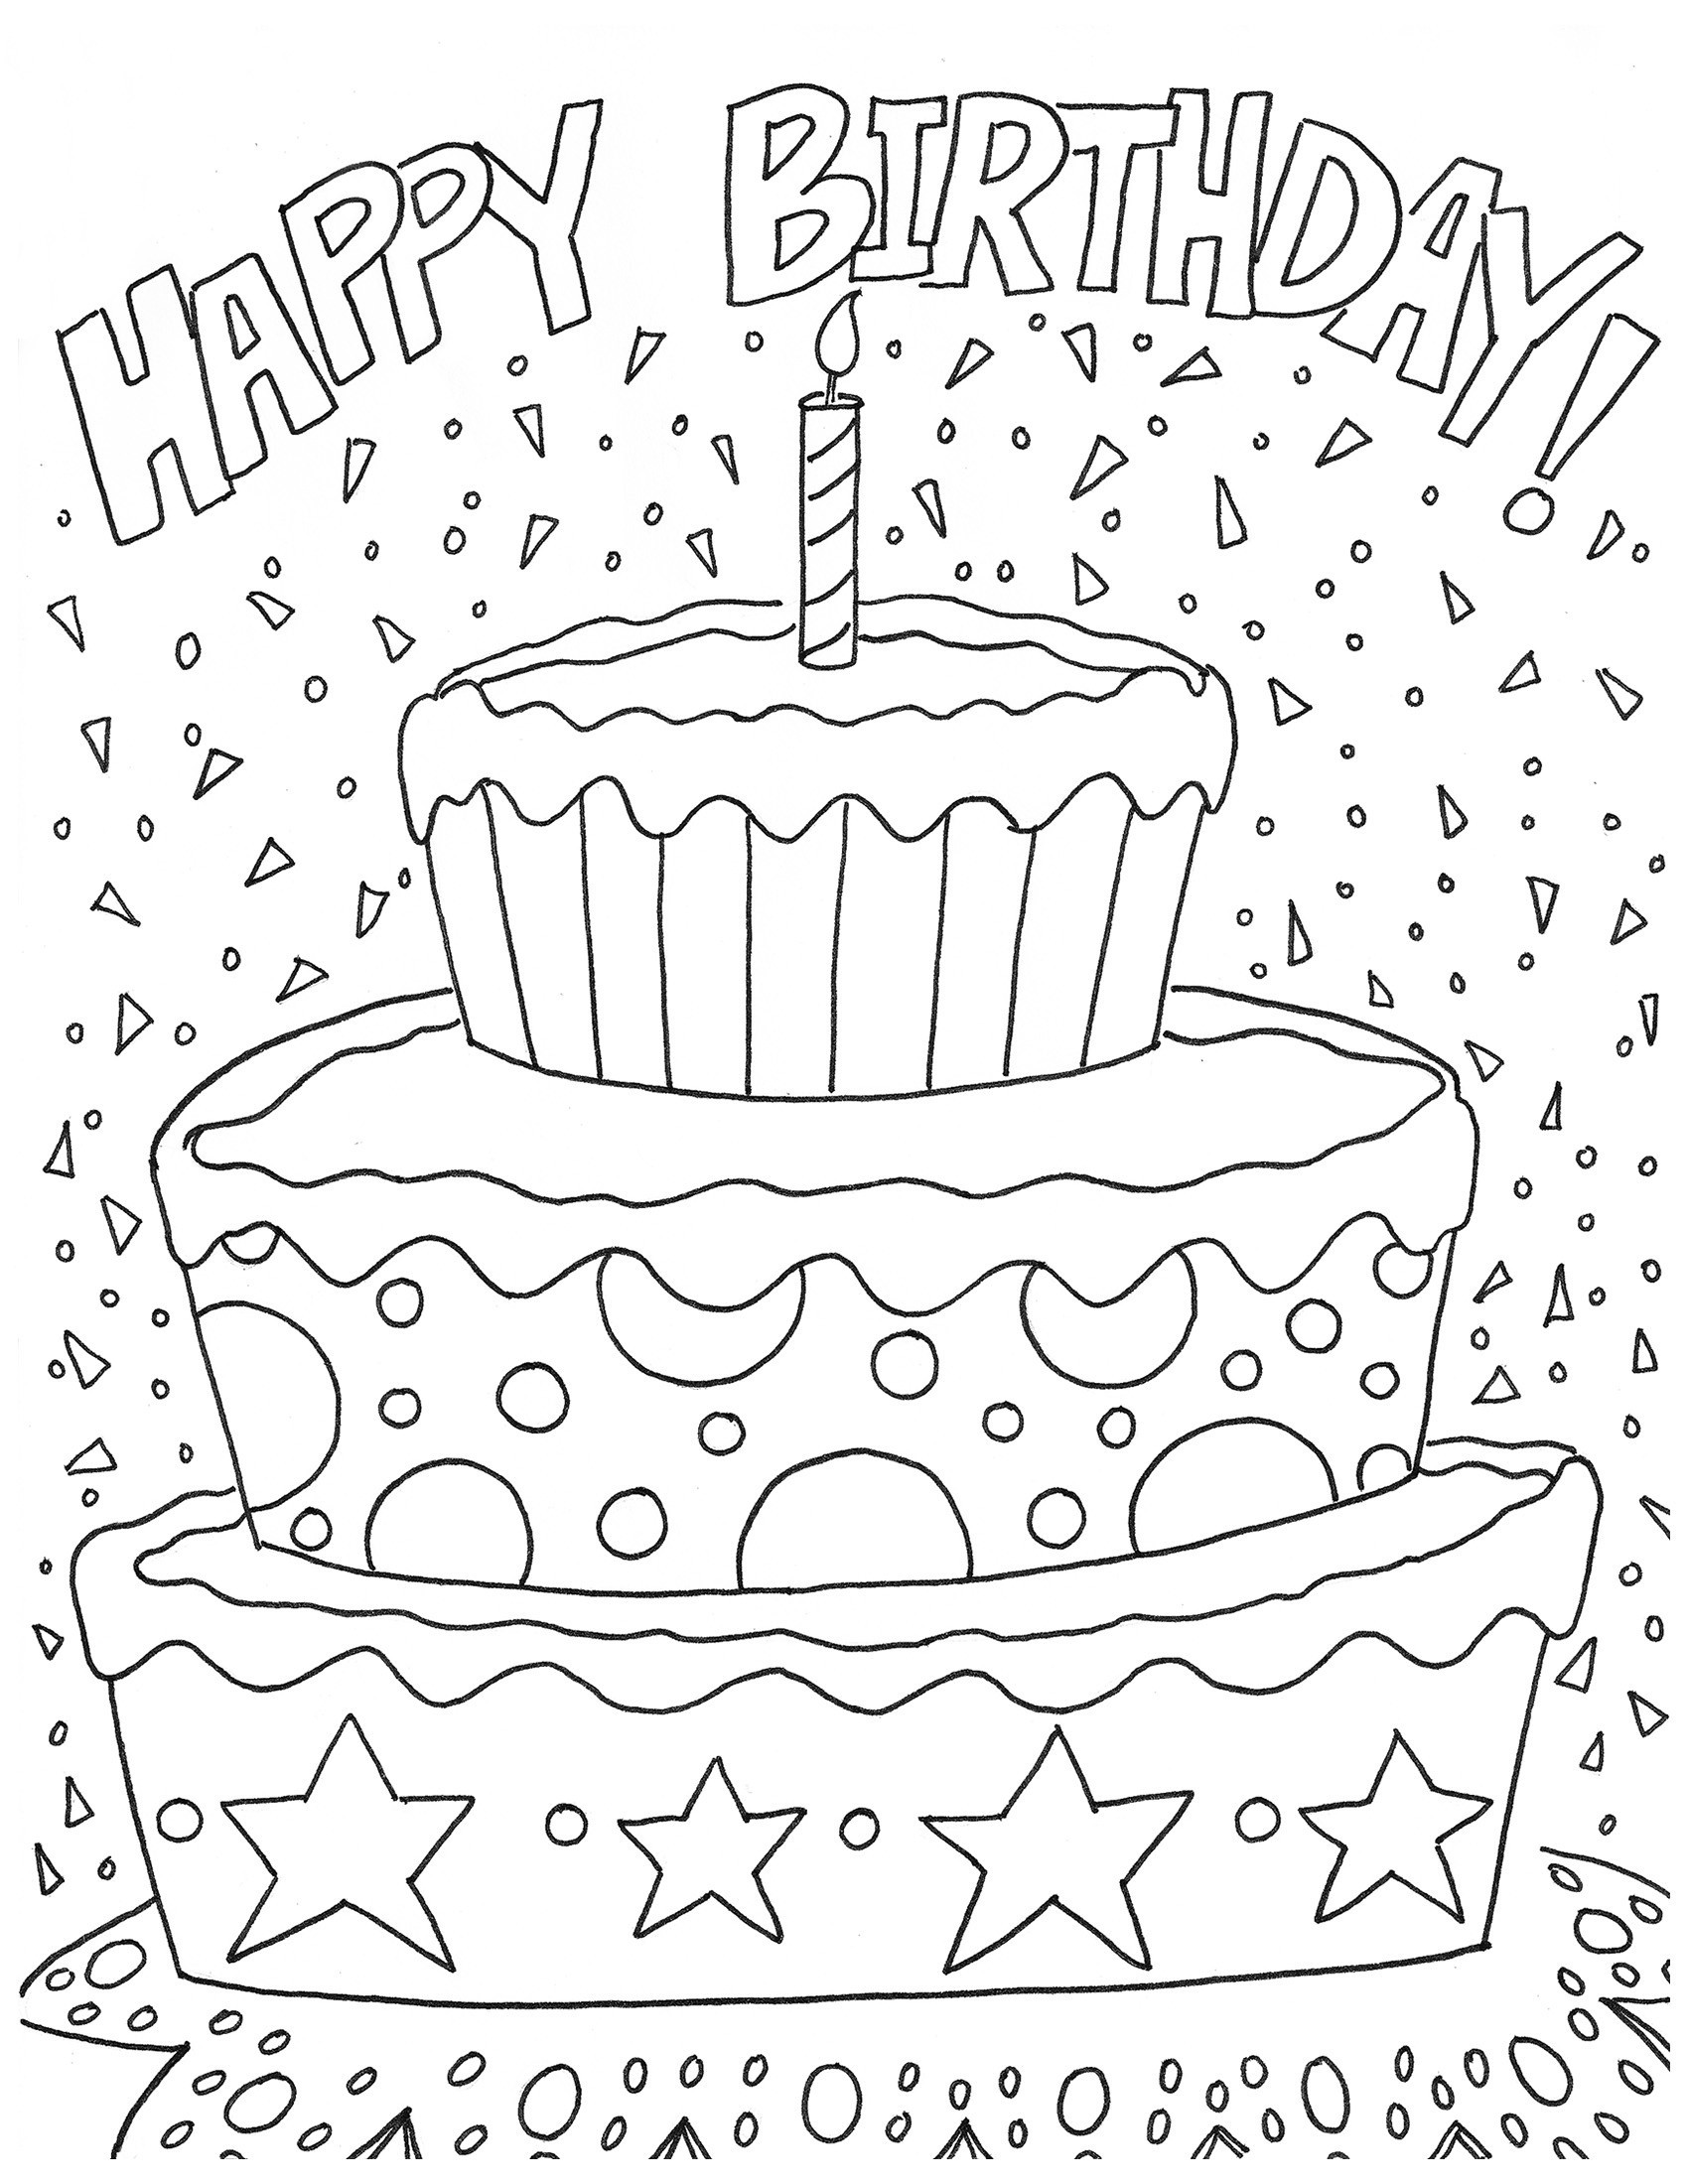 Happy Birthday Drawing Pictures at GetDrawings.com | Free for ...